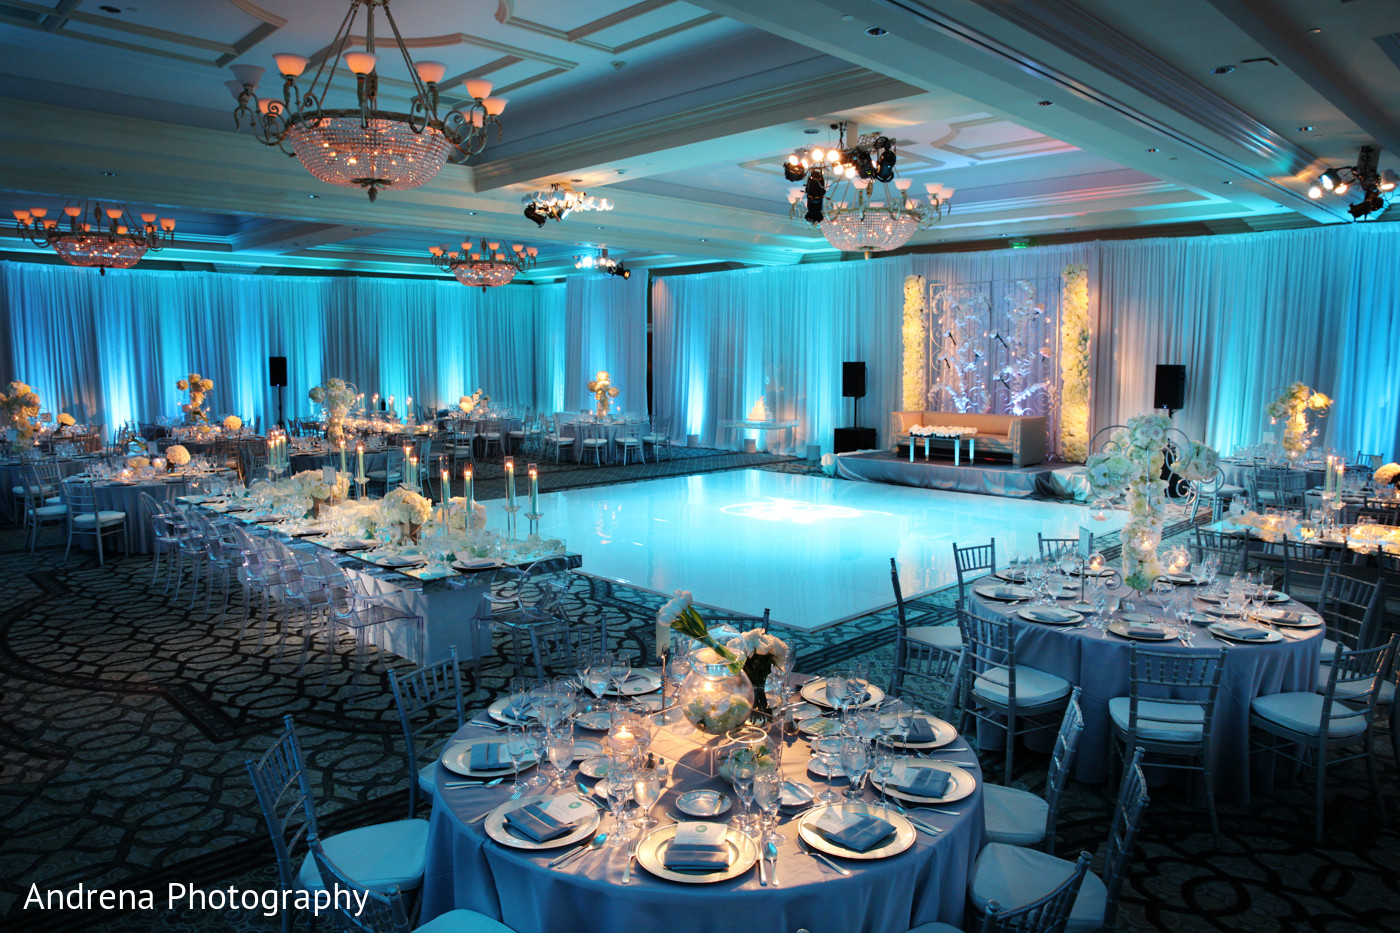 Hope This Stunning Collection Of Receptions Ignited Your Creative Flame!